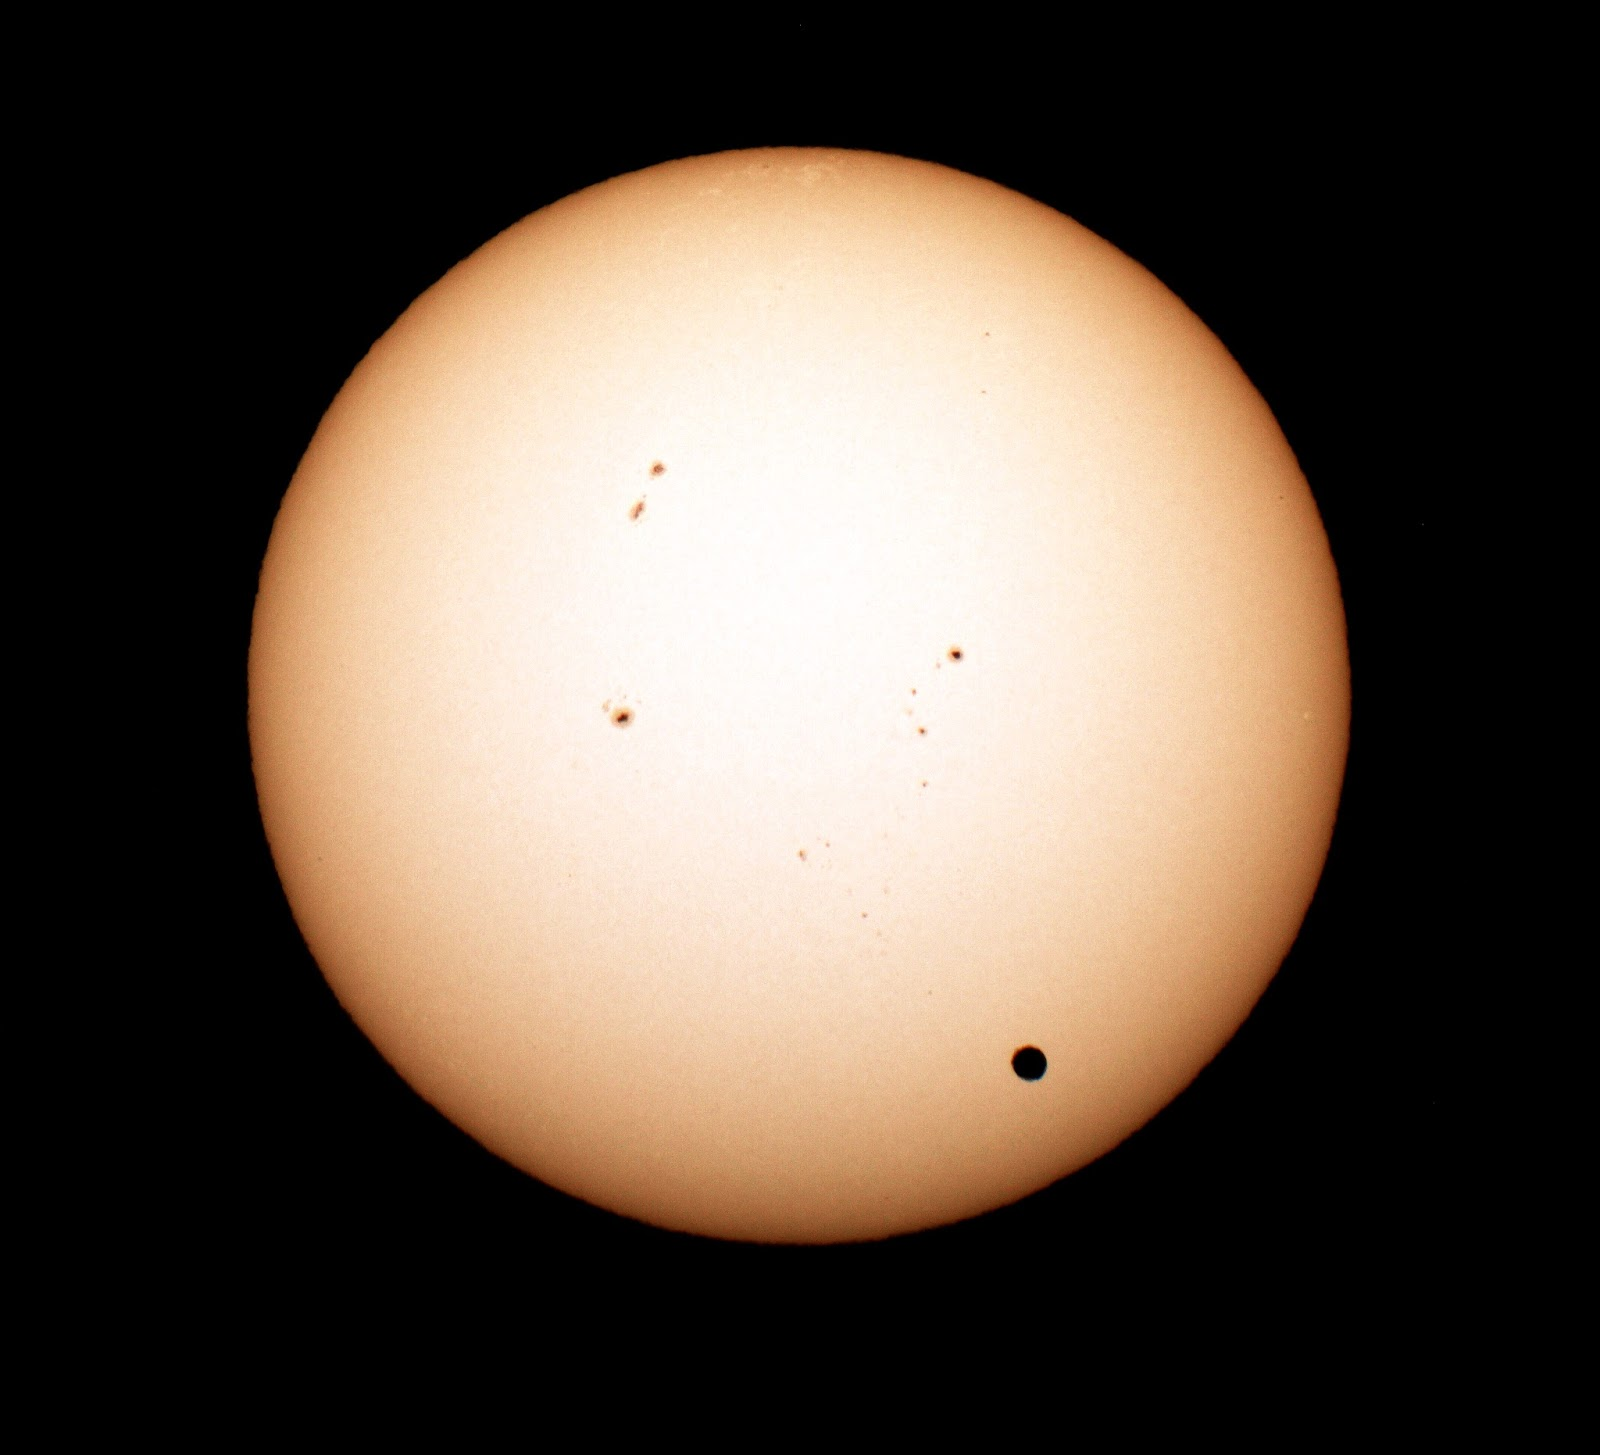 The transit of Venus of June 5, 2012. This photo, taken by my good friend Tom, shows our Sun. You can see sunspots across the face of the star, and in the lower right you see a black dot. That dot is Venus passing between Earth and the Sun... a transit. If we were to look at the light curve of this event before, during, and immediately after the transit, we would see the tell-tale dip in brightness as Venus passed across our field of view. I was fortunate enough to observe this event, as the next transit of Venus won't occur until my birthday in the year 2117! I'll be *#&$@ years old!